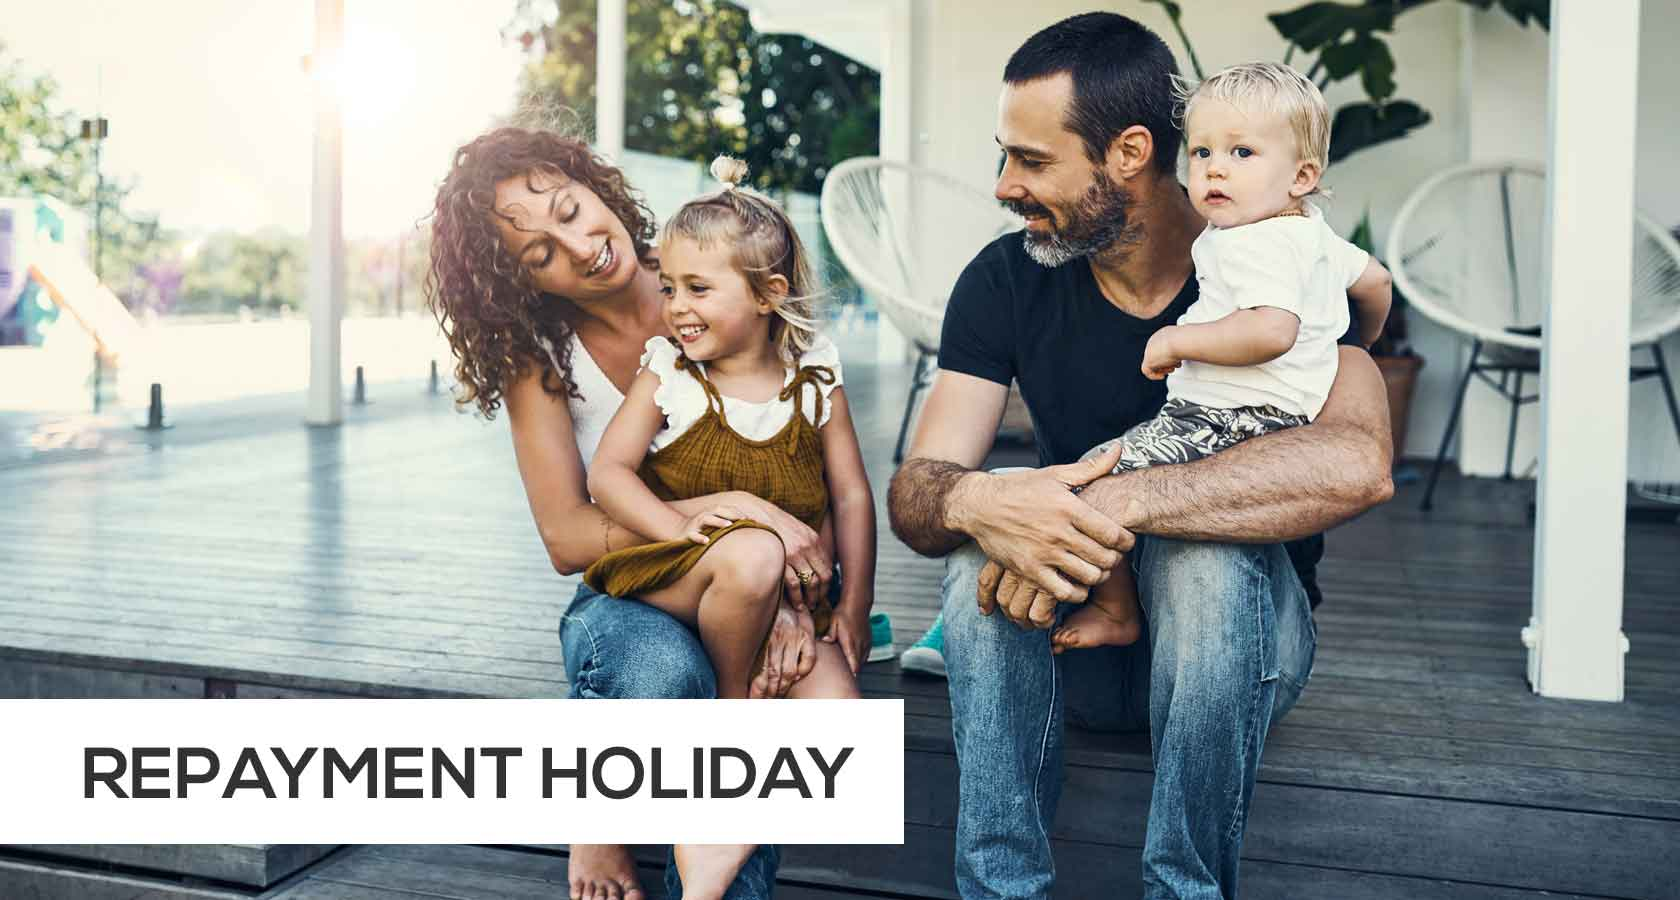 Repayment Holiday